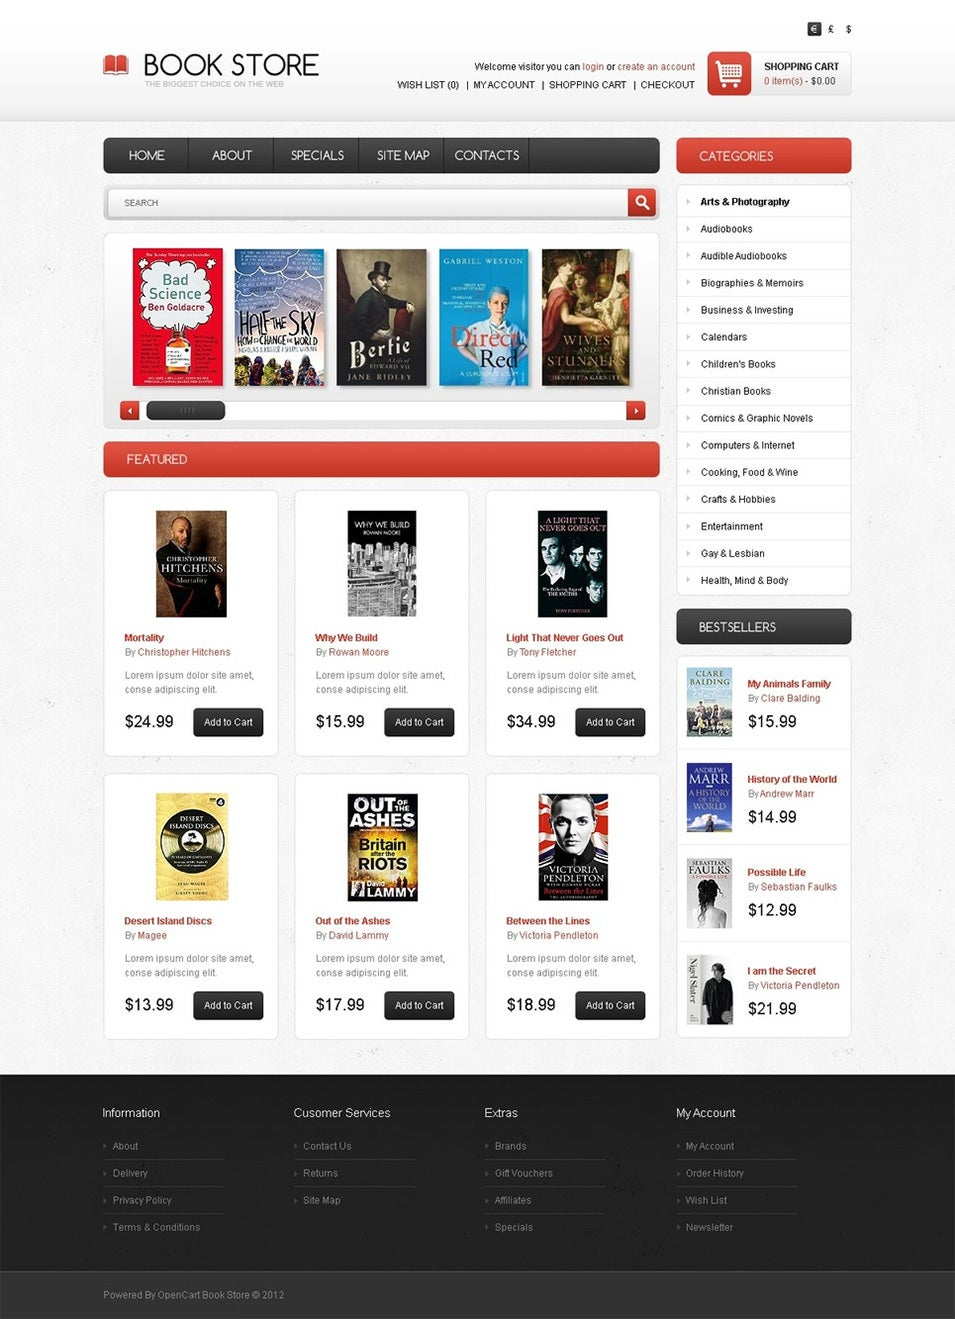 Bestsellers OpenCart Template Top Result 60 Inspirational Opencart Bookstore Template Gallery 2017 Phe2